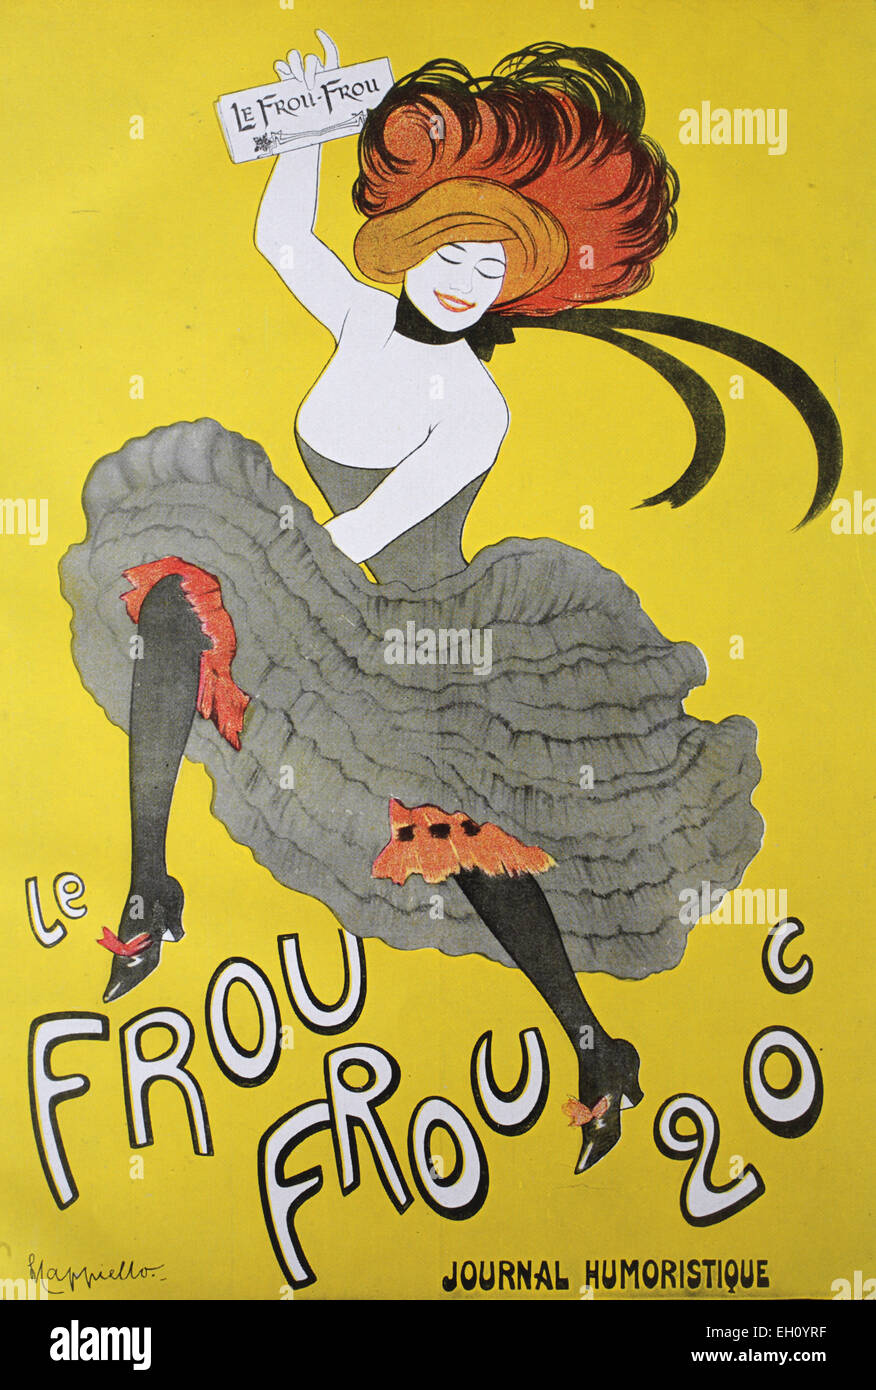 Vintage French Poster Stock Photos & Vintage French Poster Stock ...